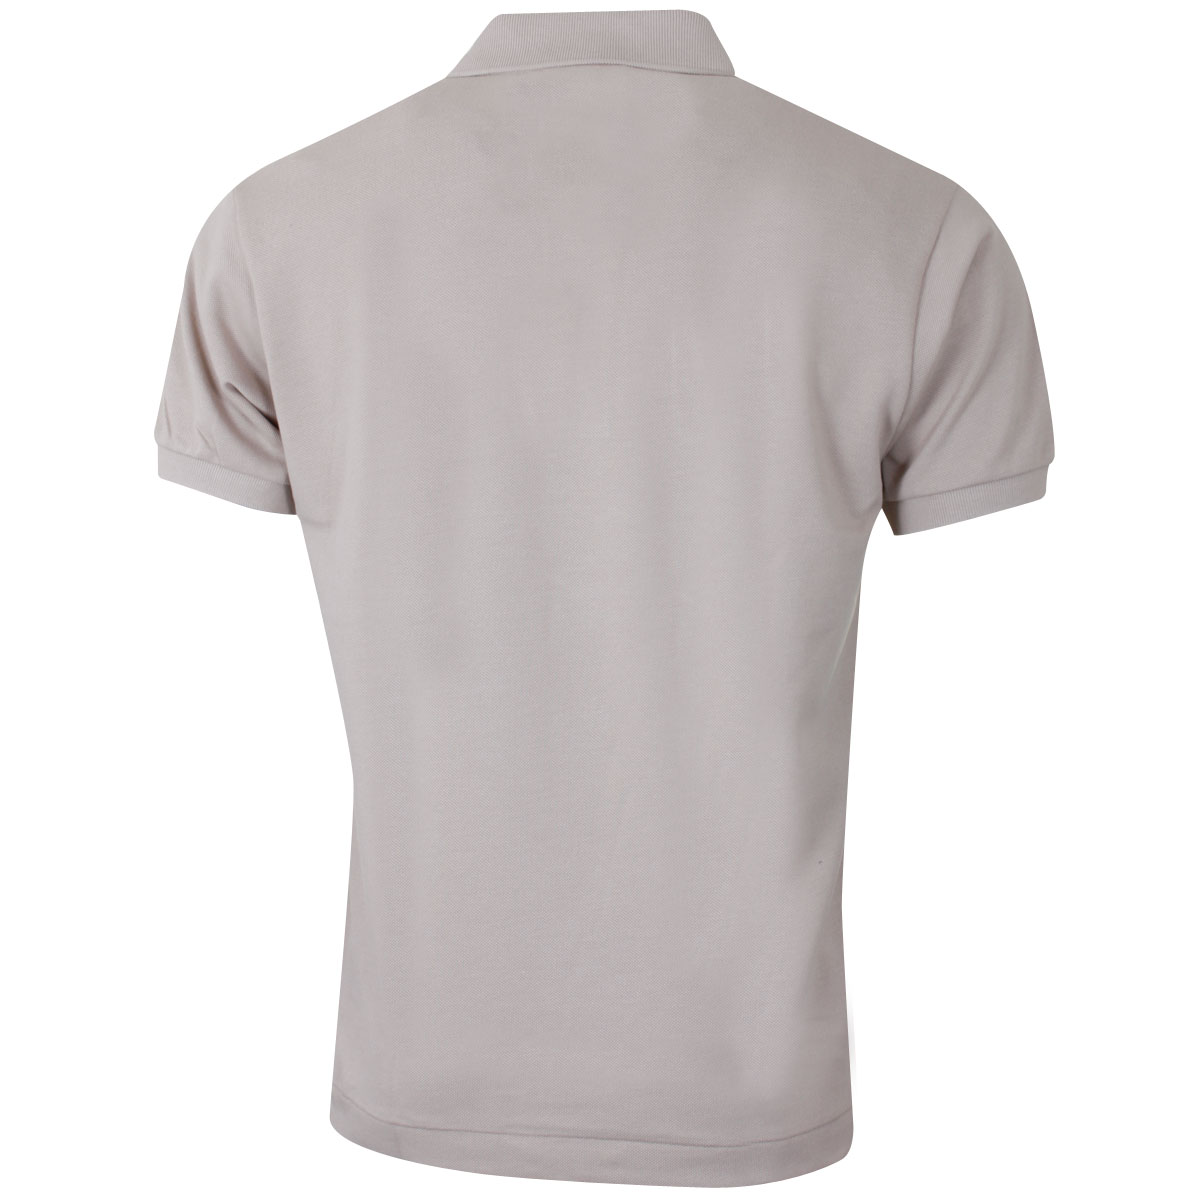 Lacoste-Mens-Classic-Cotton-L1212-Short-Sleeve-Polo-Shirt-26-OFF-RRP thumbnail 45